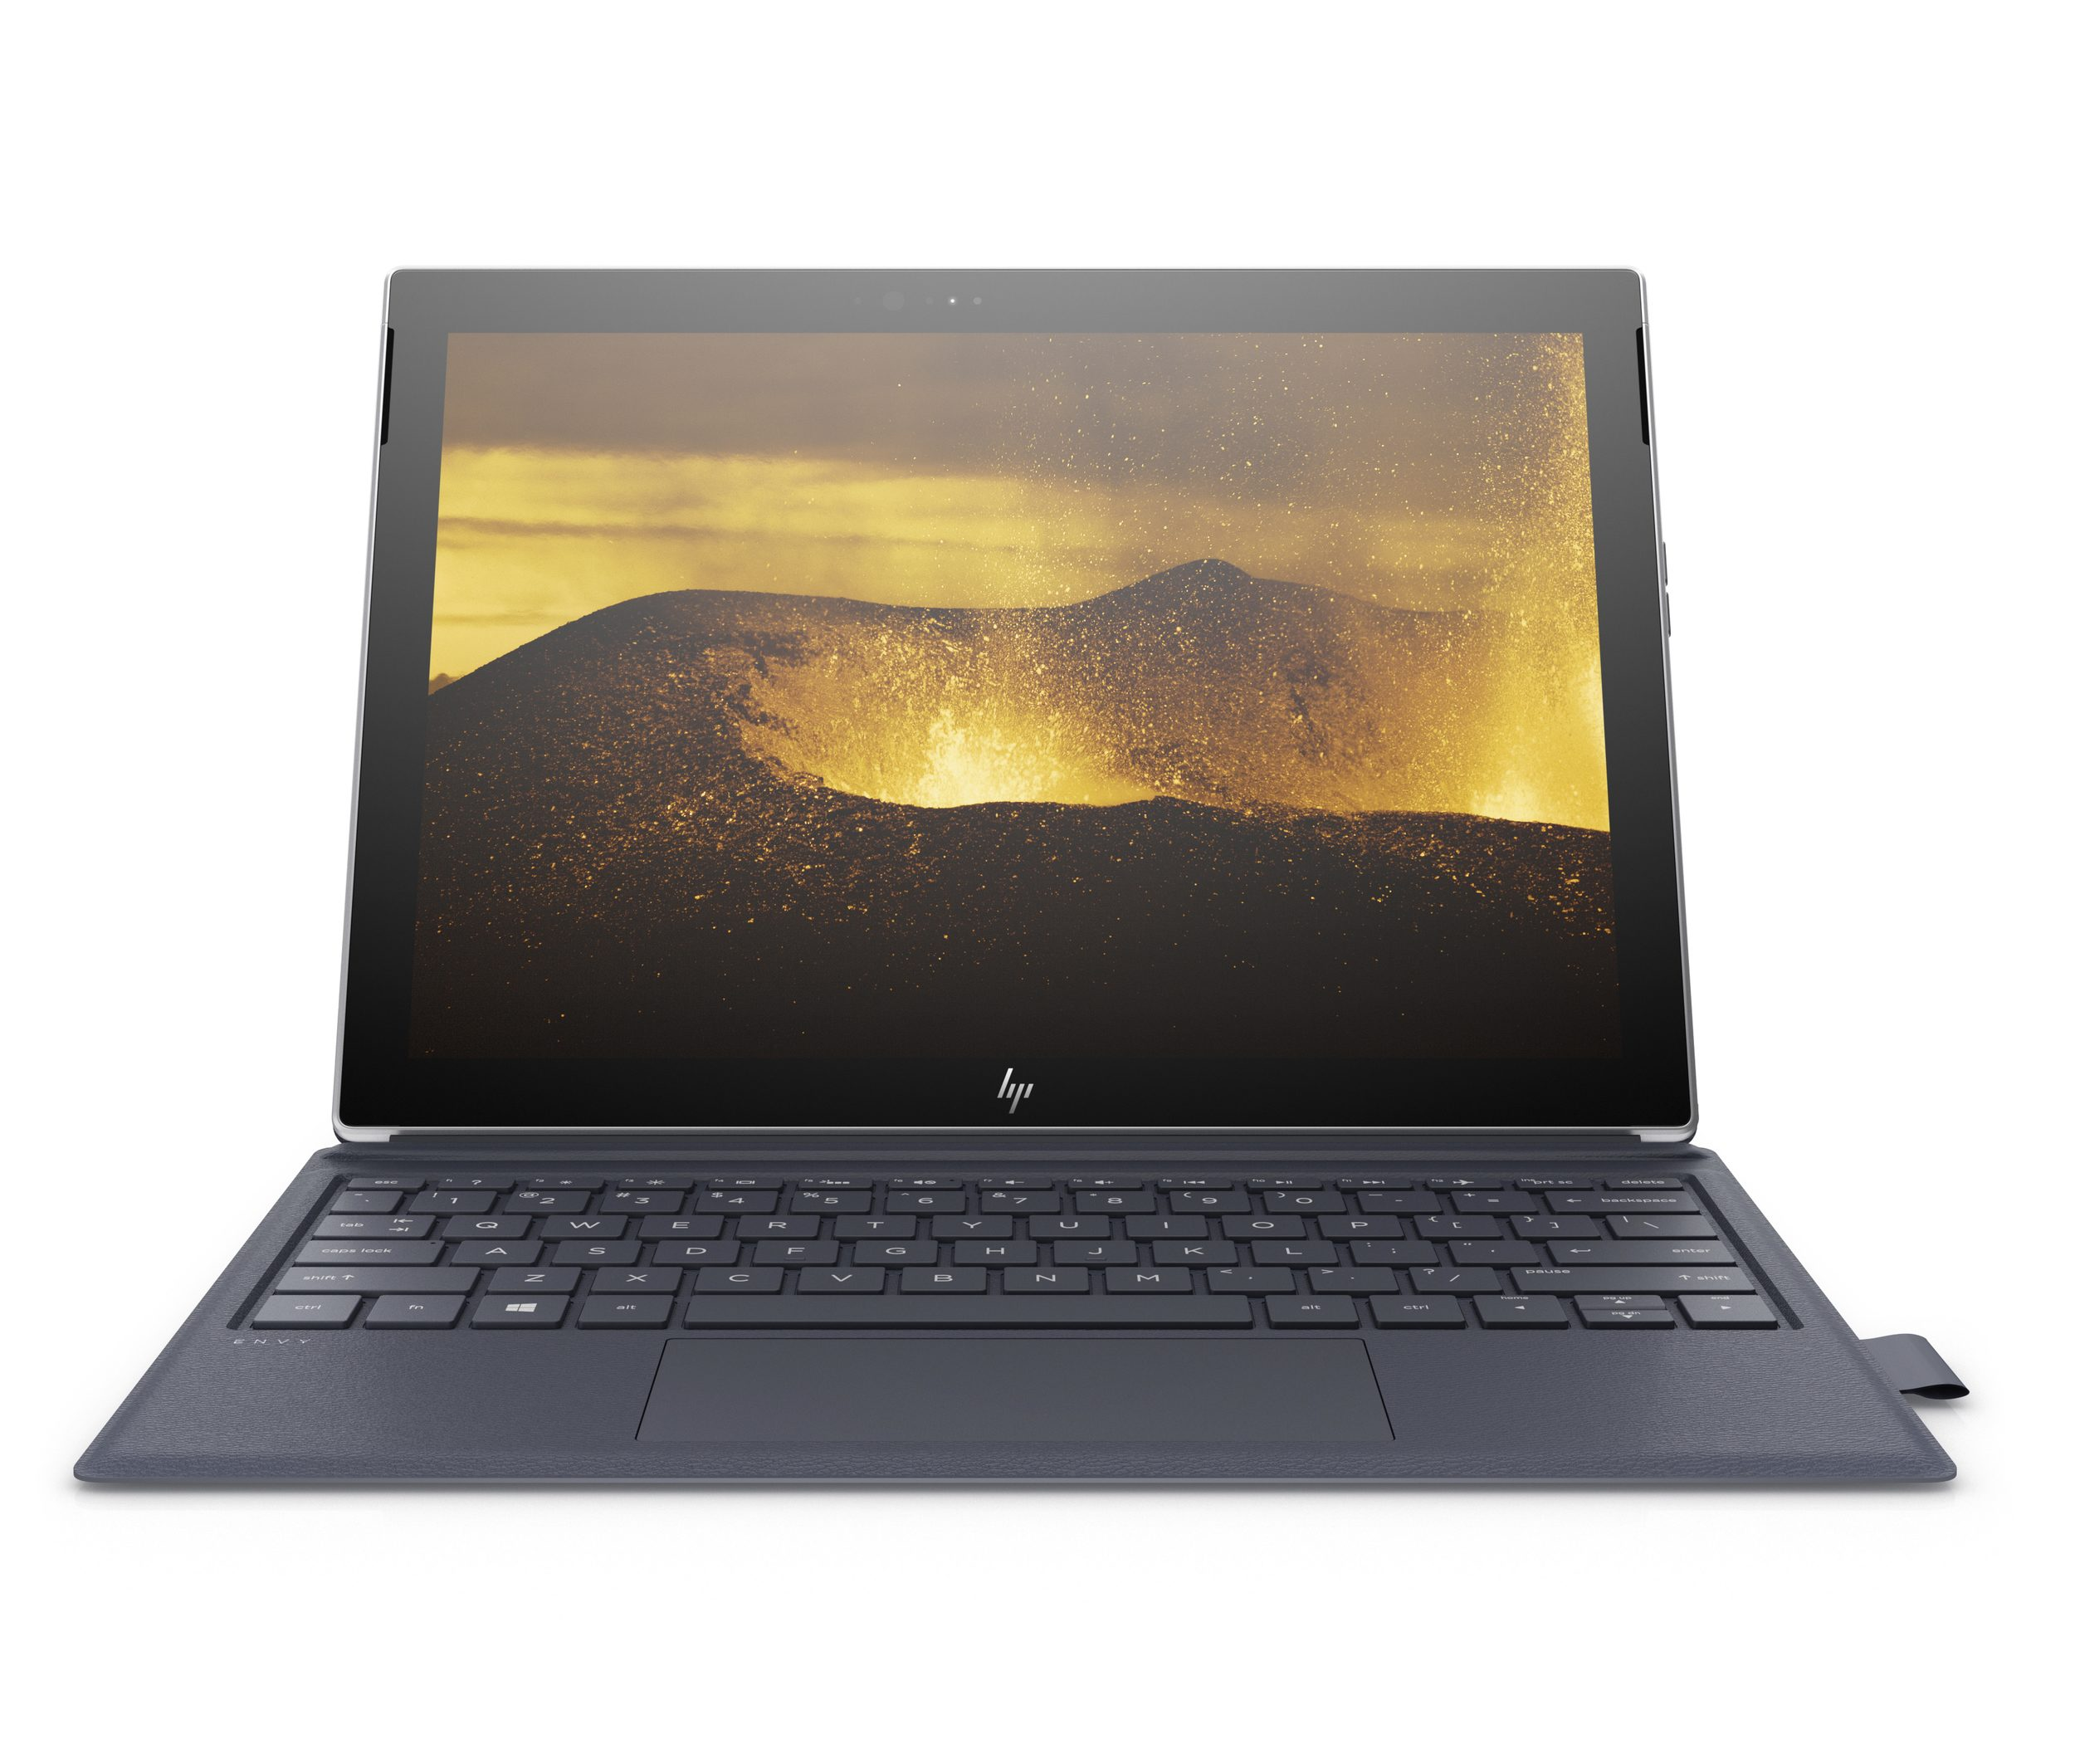 The HP Envy X2 was one of the first Snapdragon 835-powered WoA devices released.